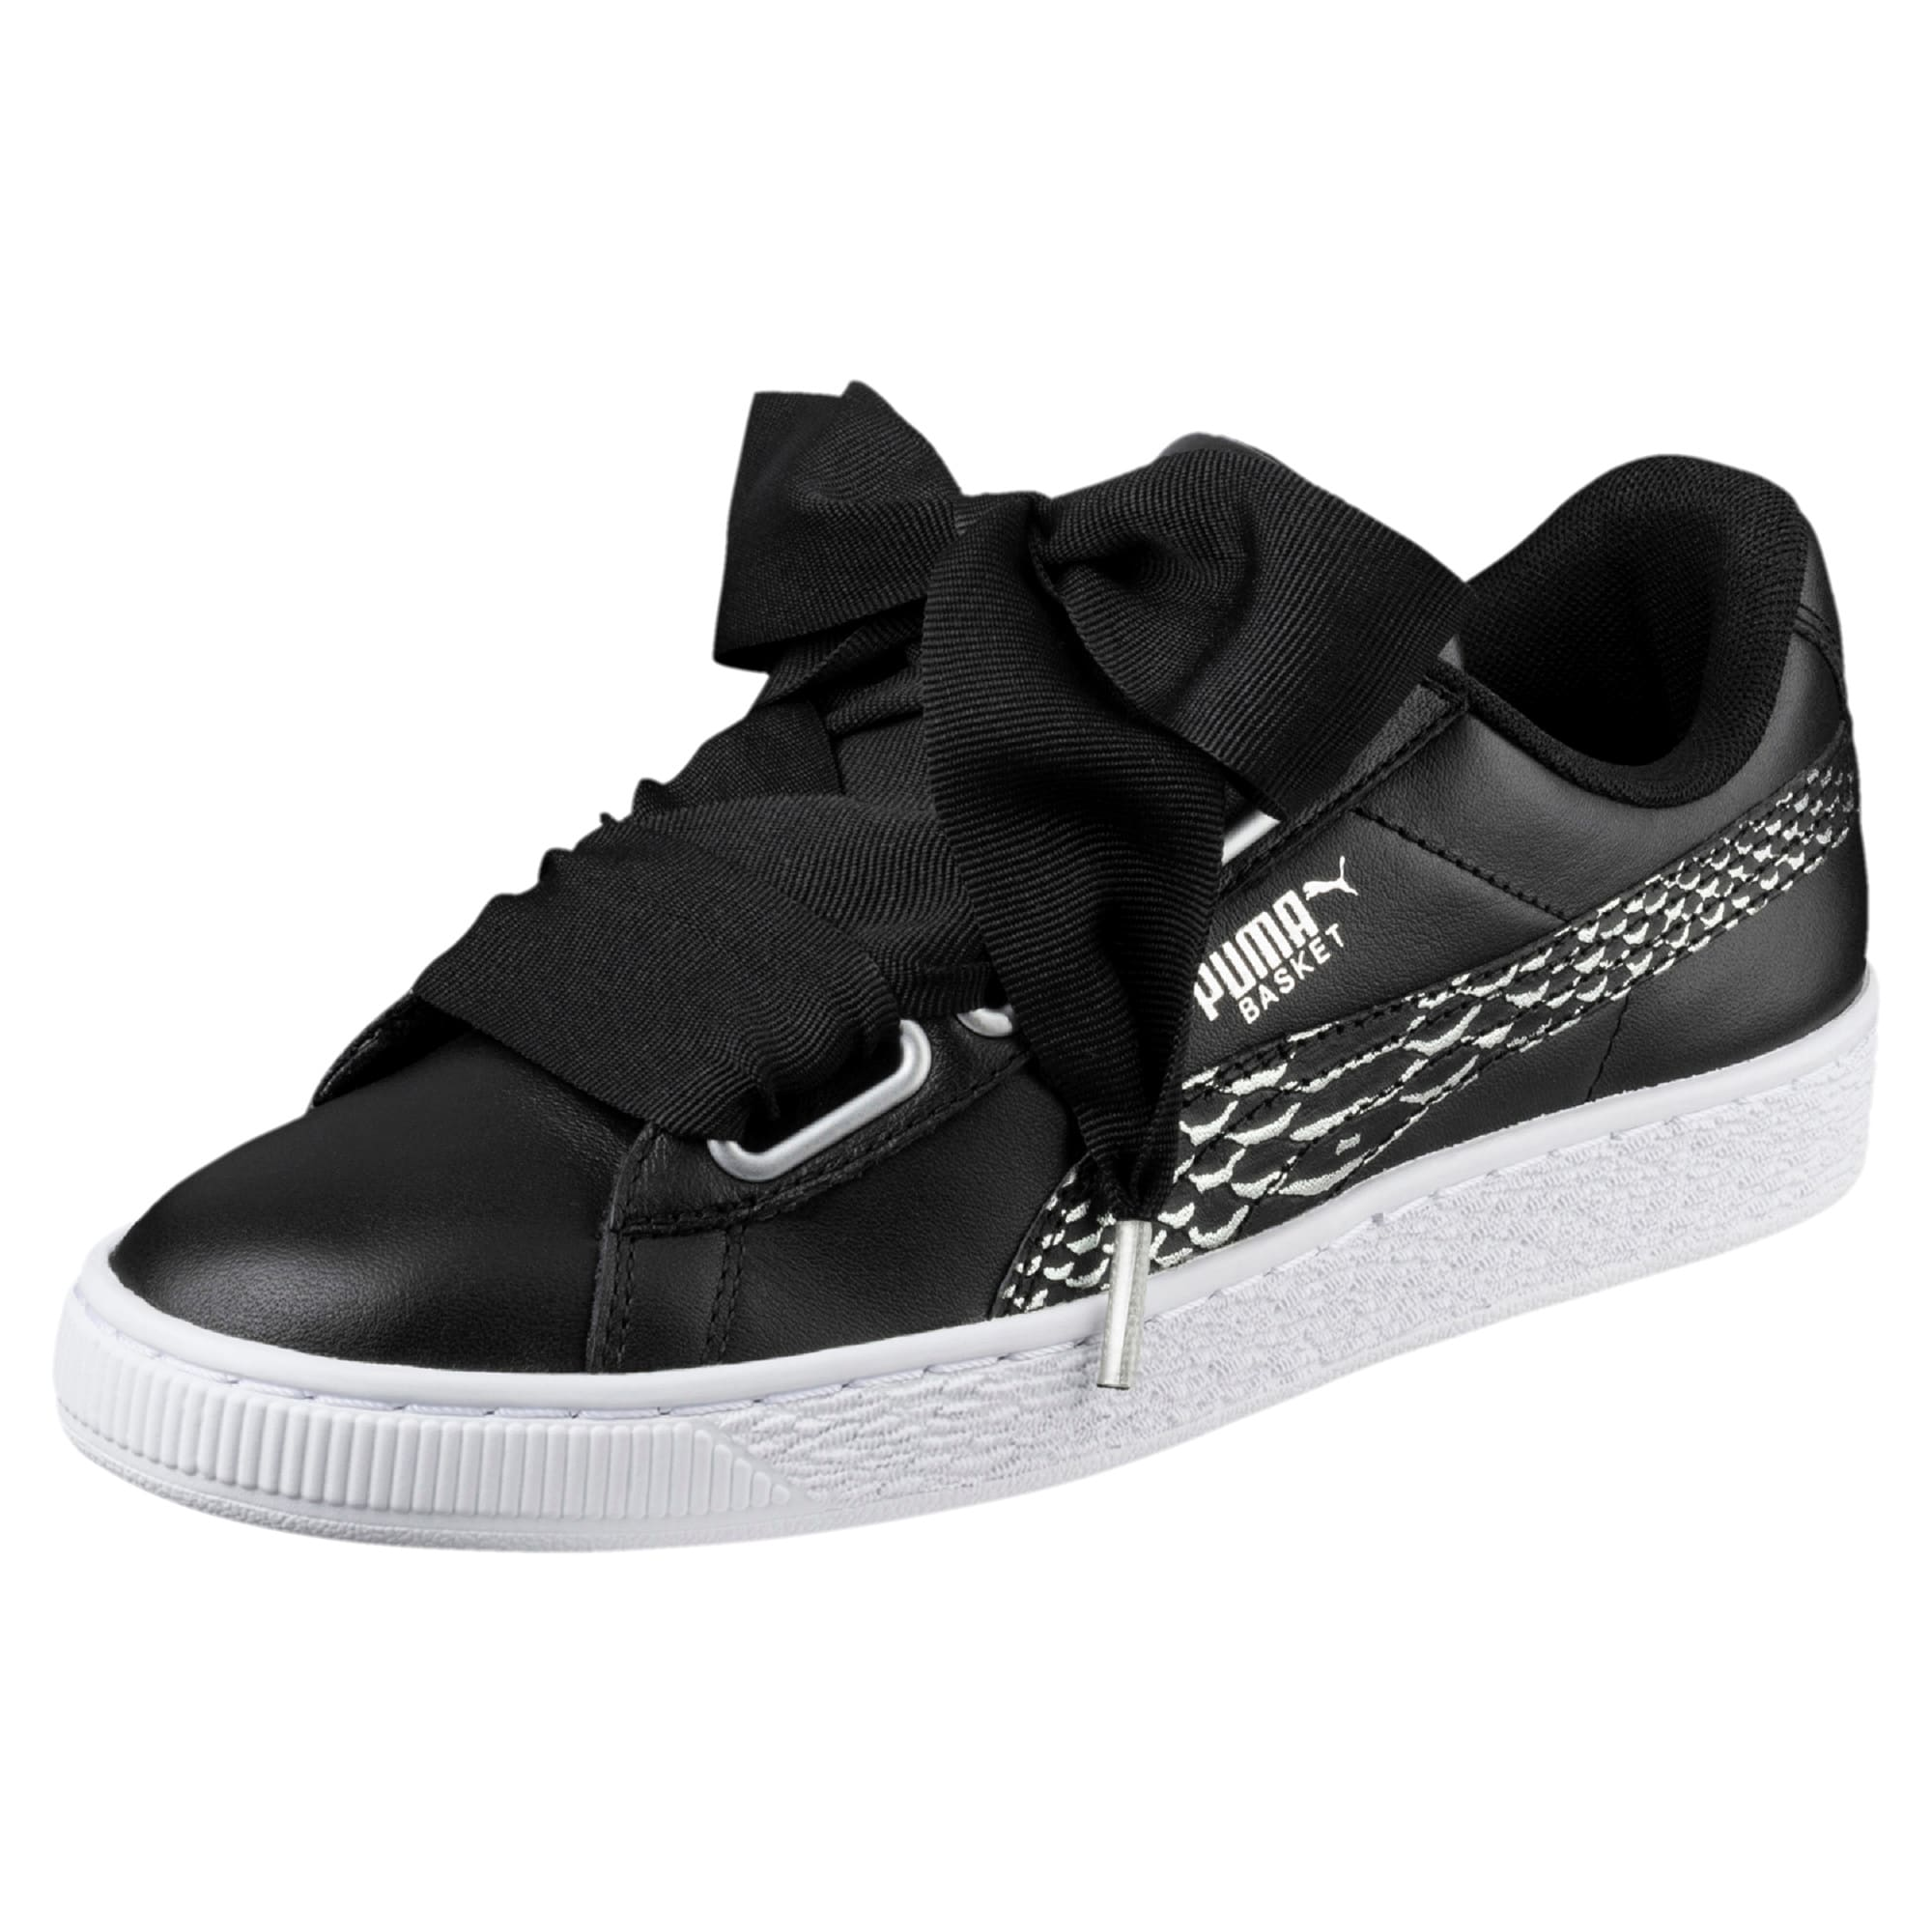 Thumbnail 1 of Basket Heart Oceanaire Women's Trainers, Puma Black-Puma White, medium-IND